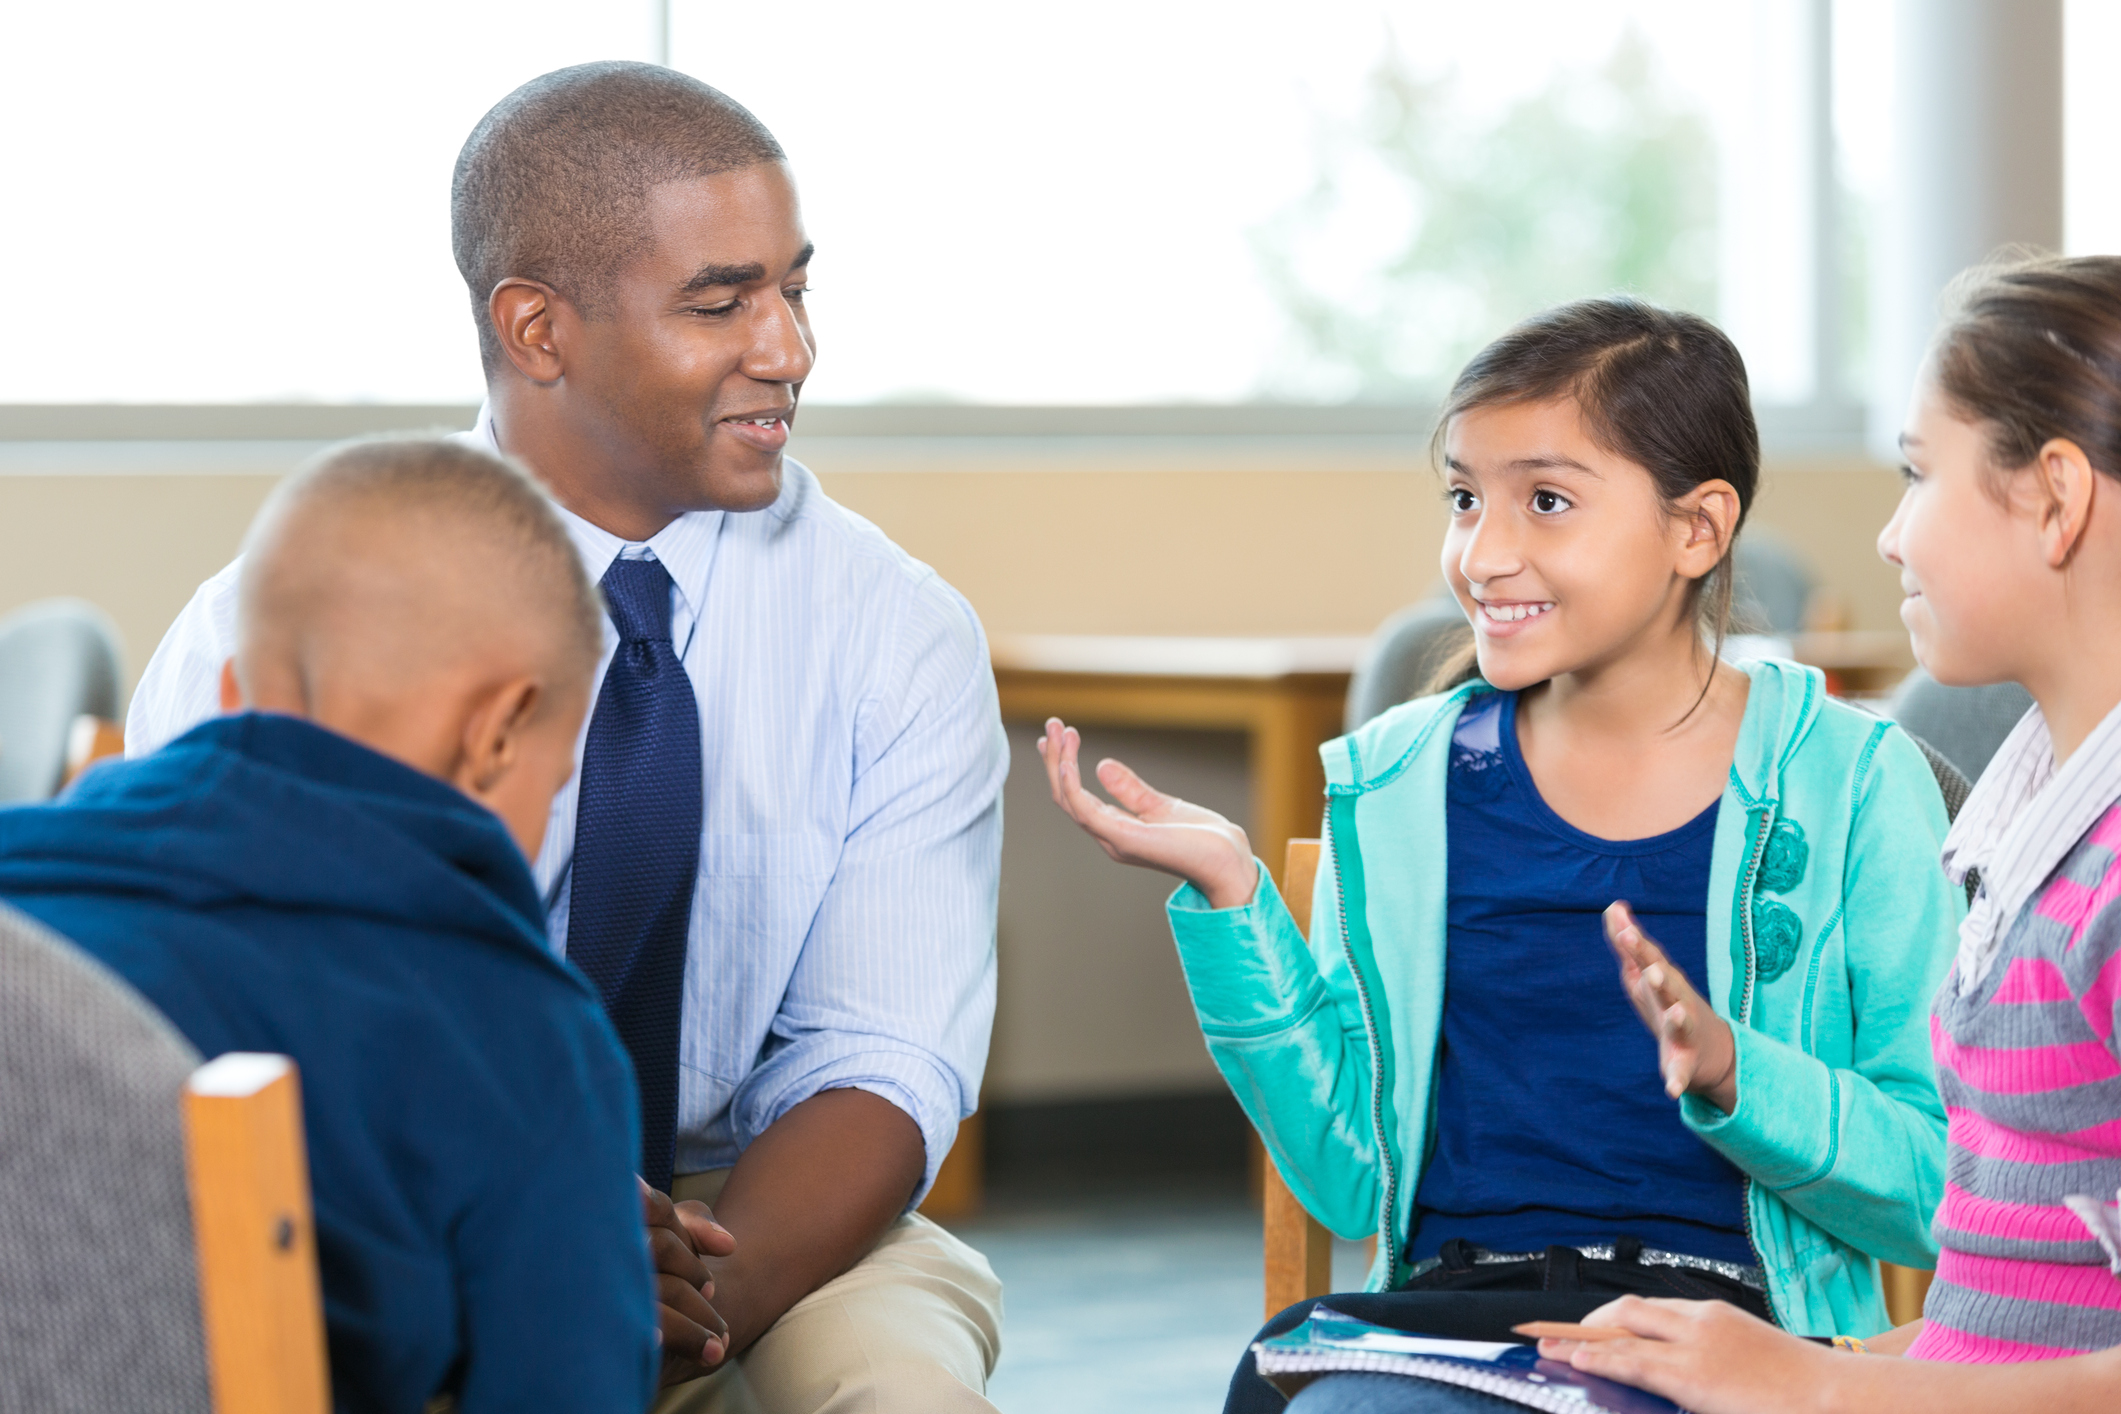 Elementary Age Kids Talking To Counselor During Group